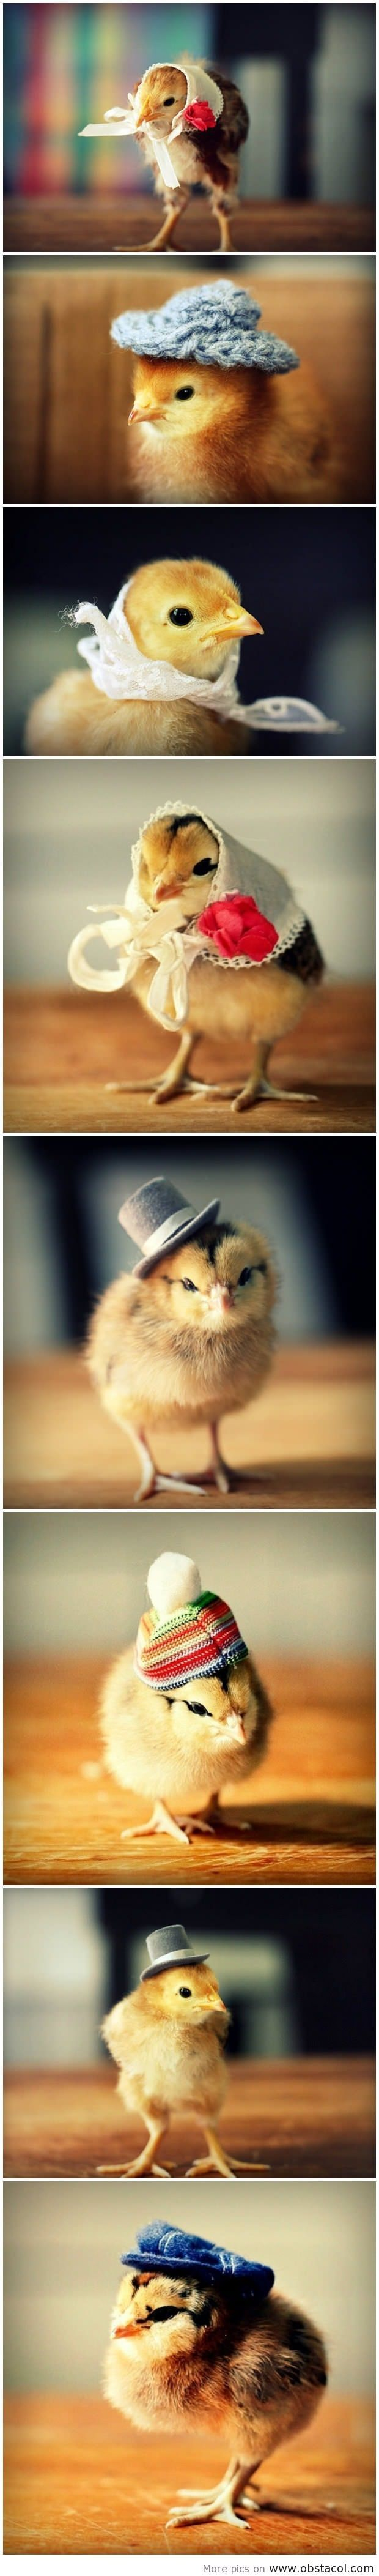 nice Naked chicks in hats @Shirley